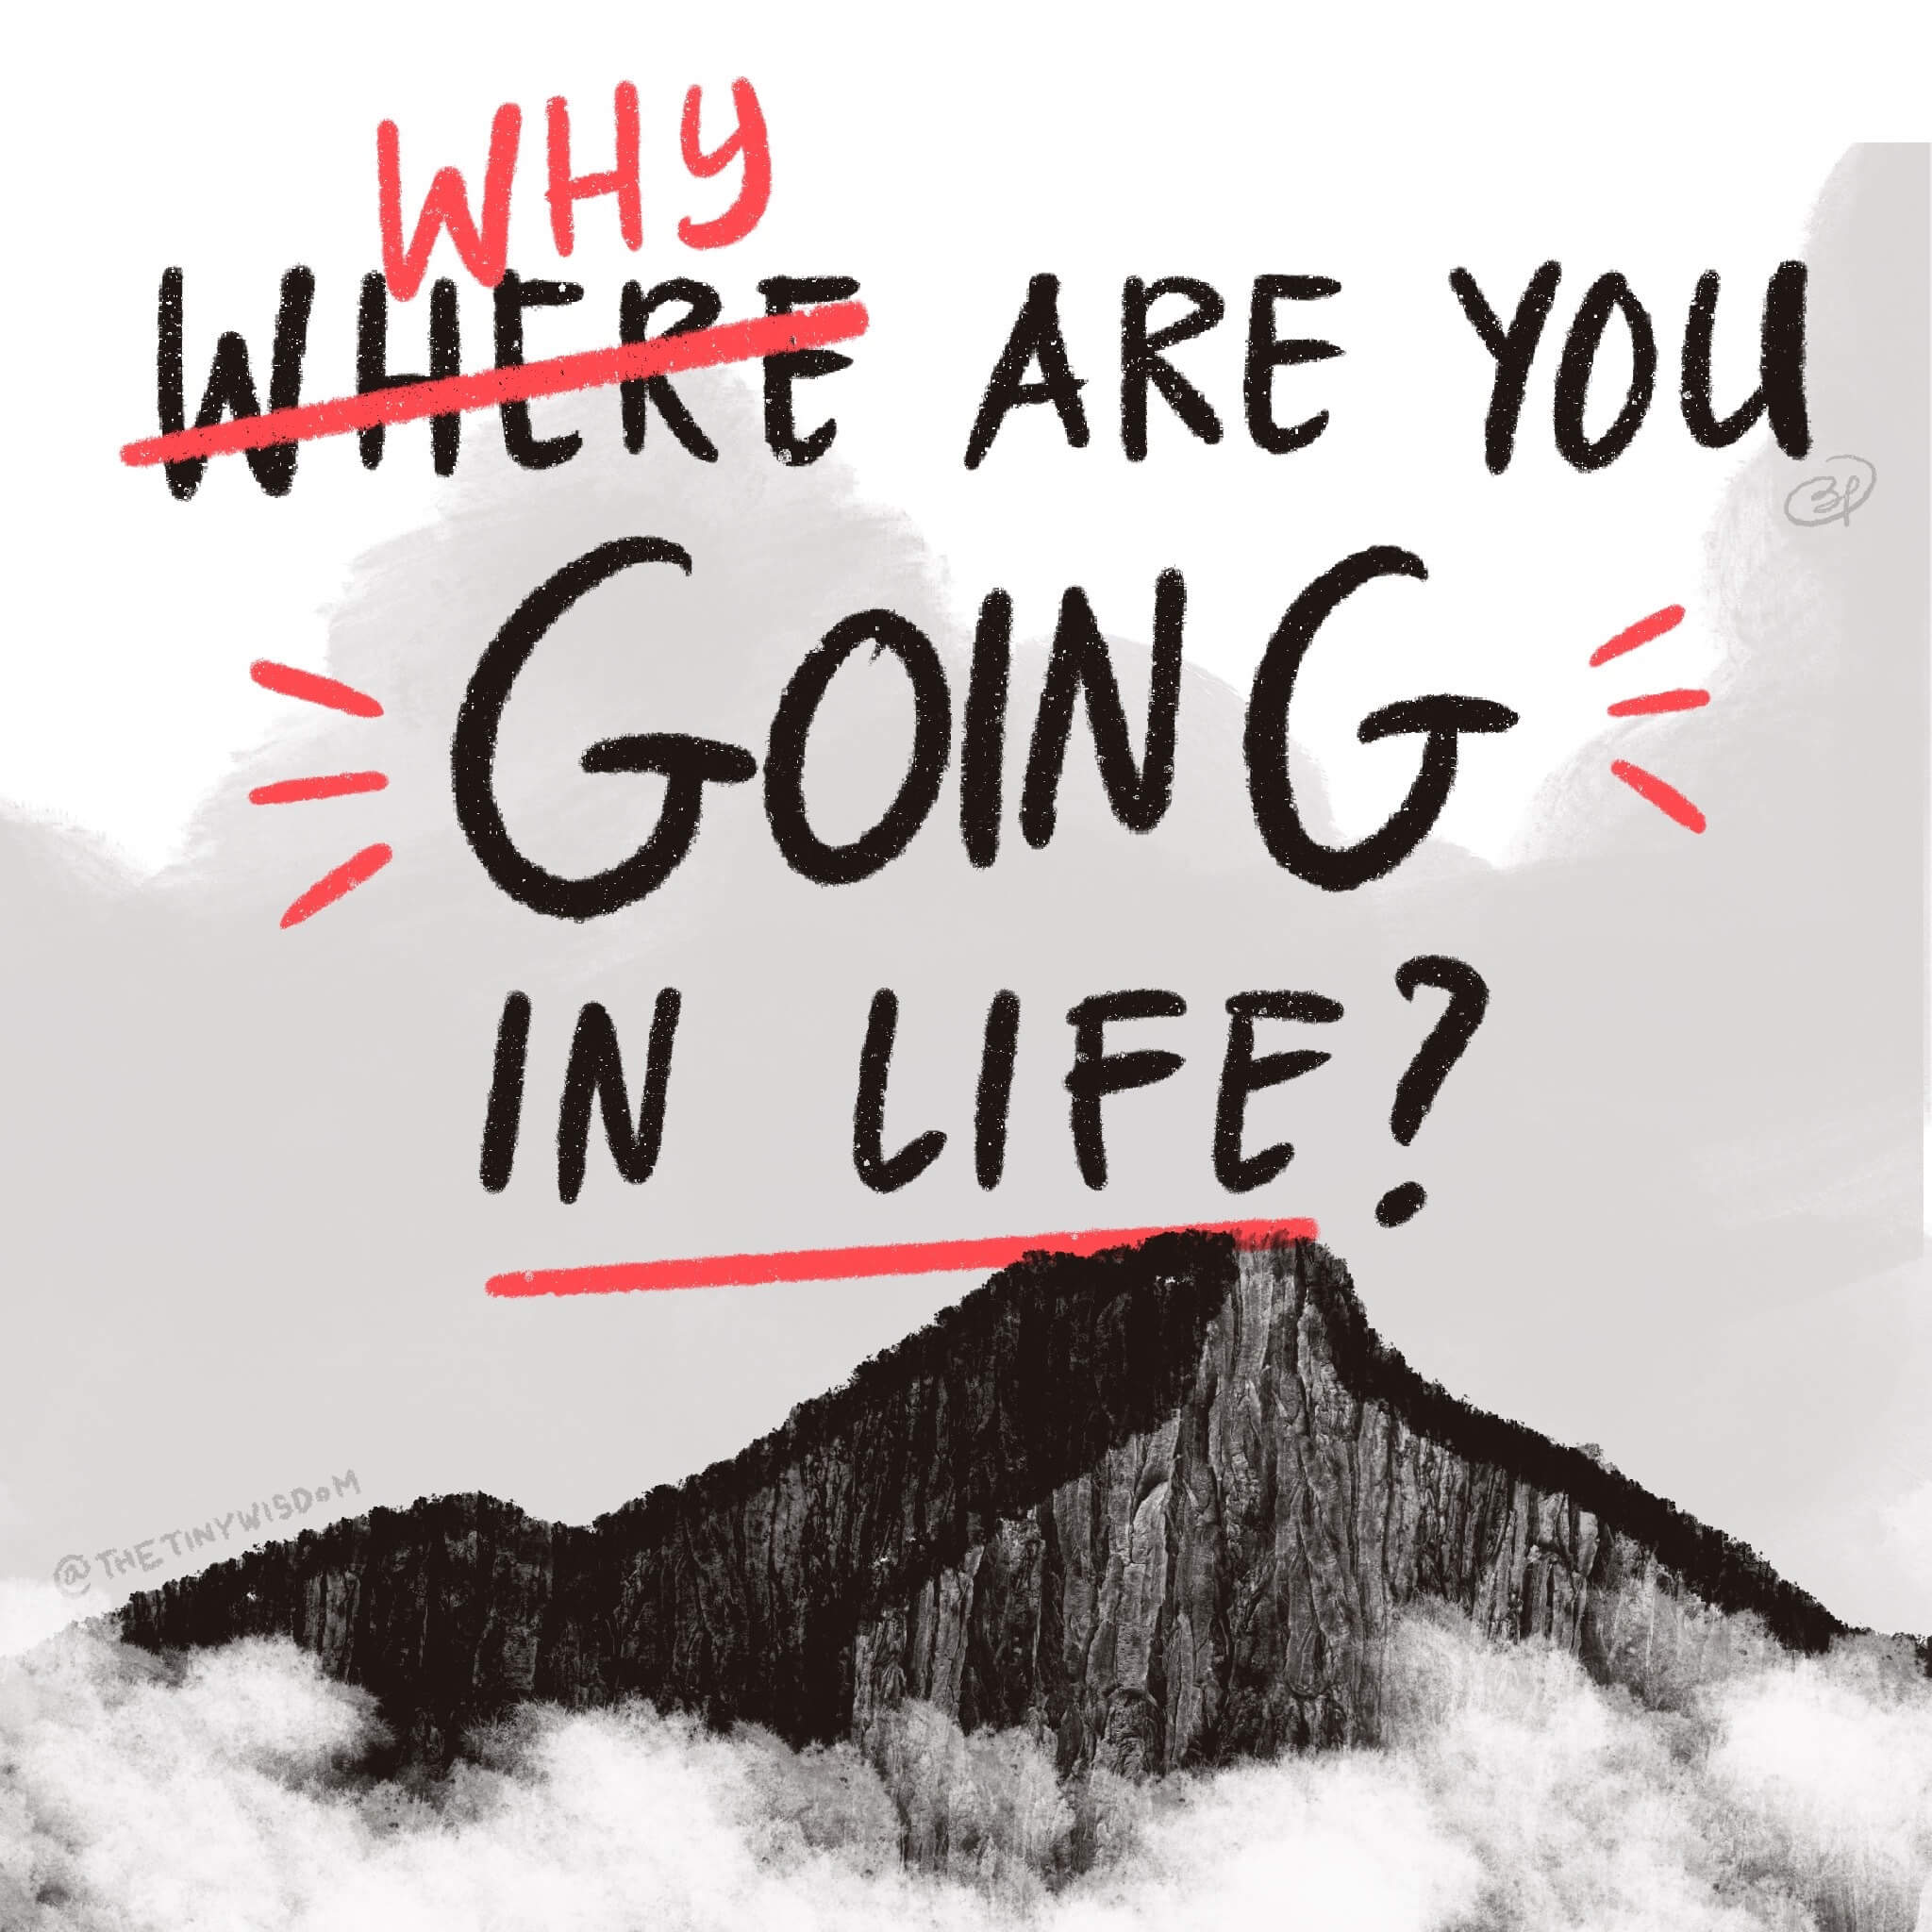 Why Are You Going in Life?